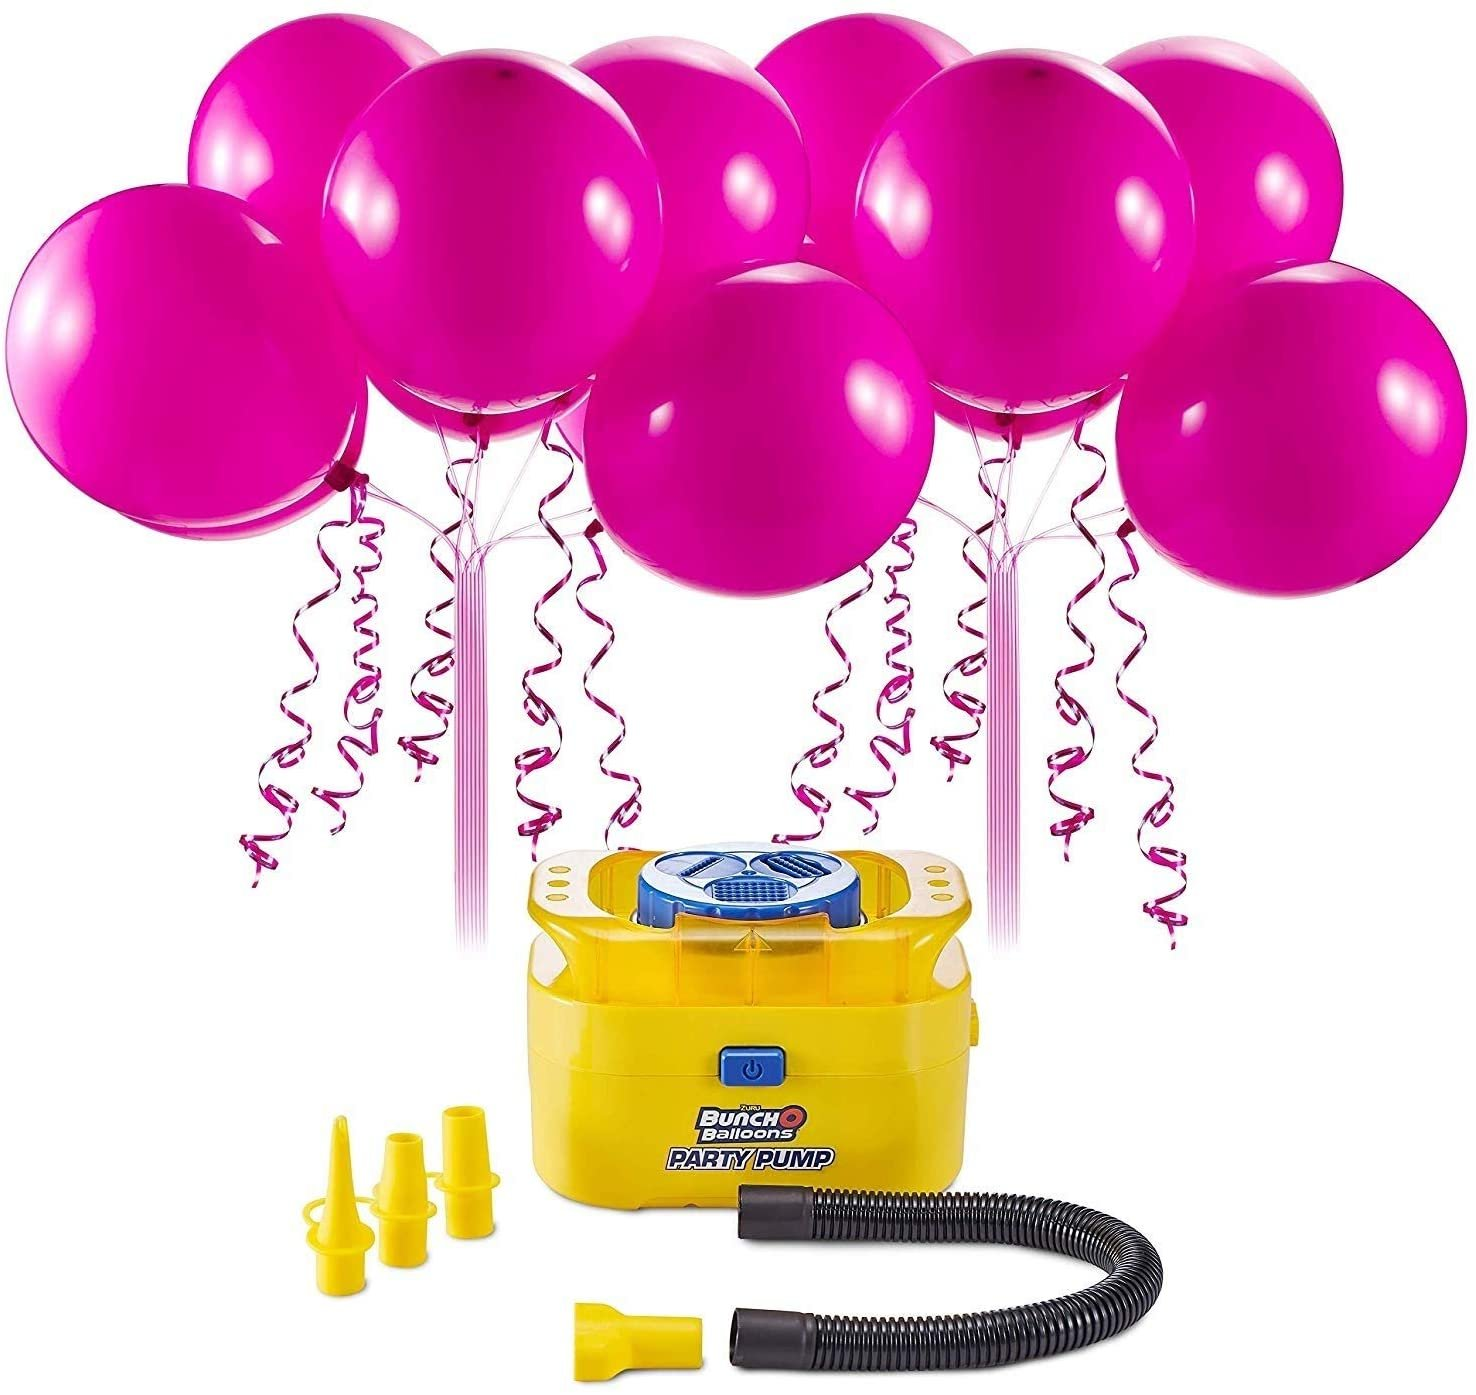 Zuru Bunch O Balloons Portable Party Balloon Electric Air Pump Starter Pack (Includes 16x 11 Inch Self-Sealing Pink Latex Balloons)